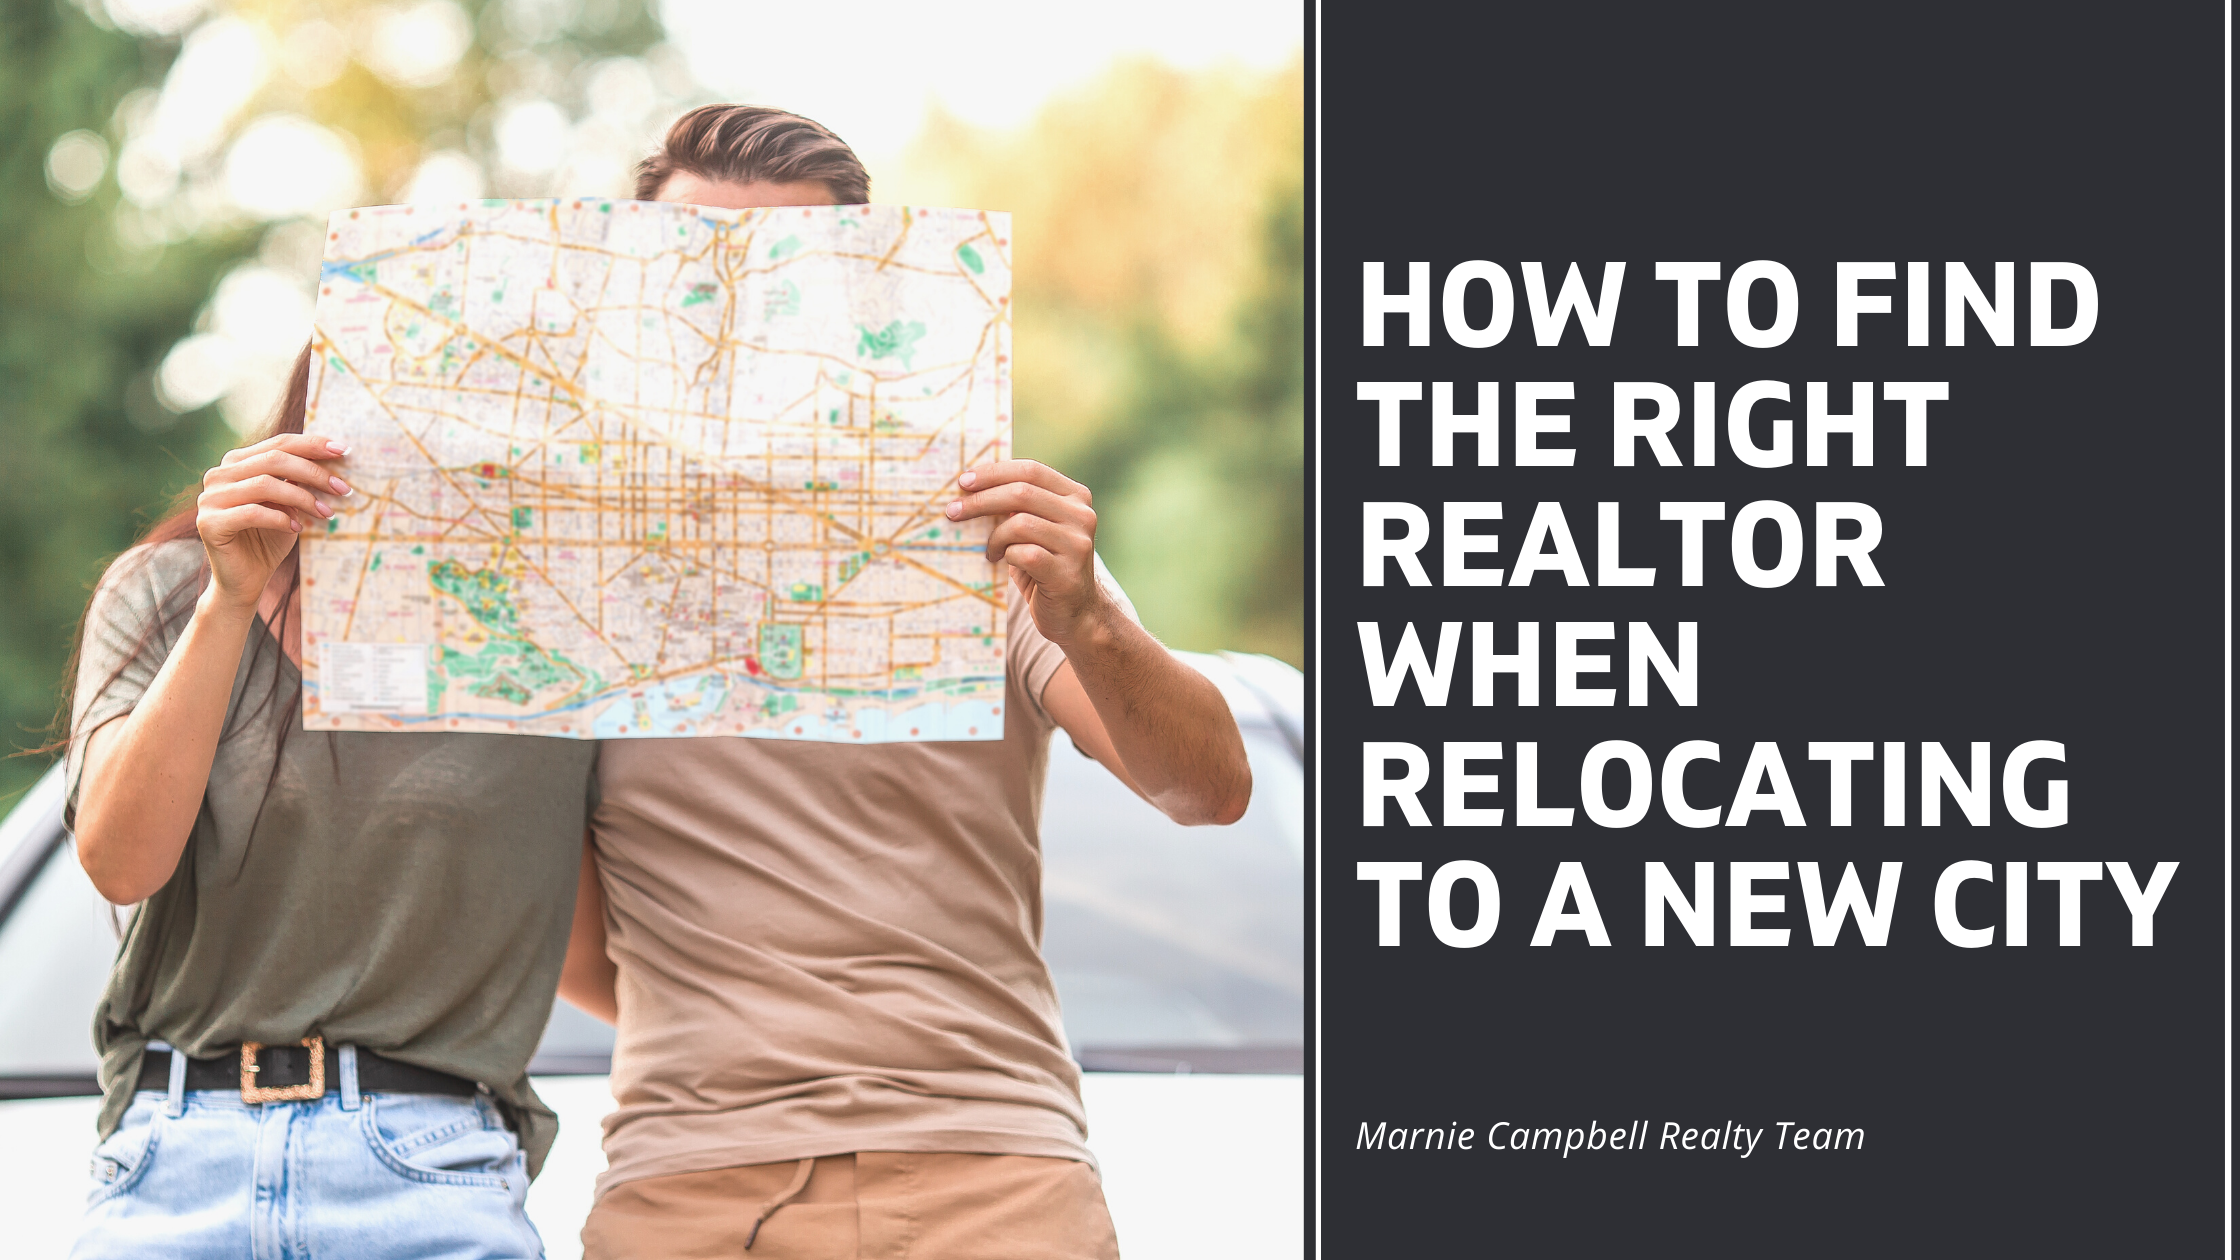 How to Find the Right Realtor When Relocating to a New City